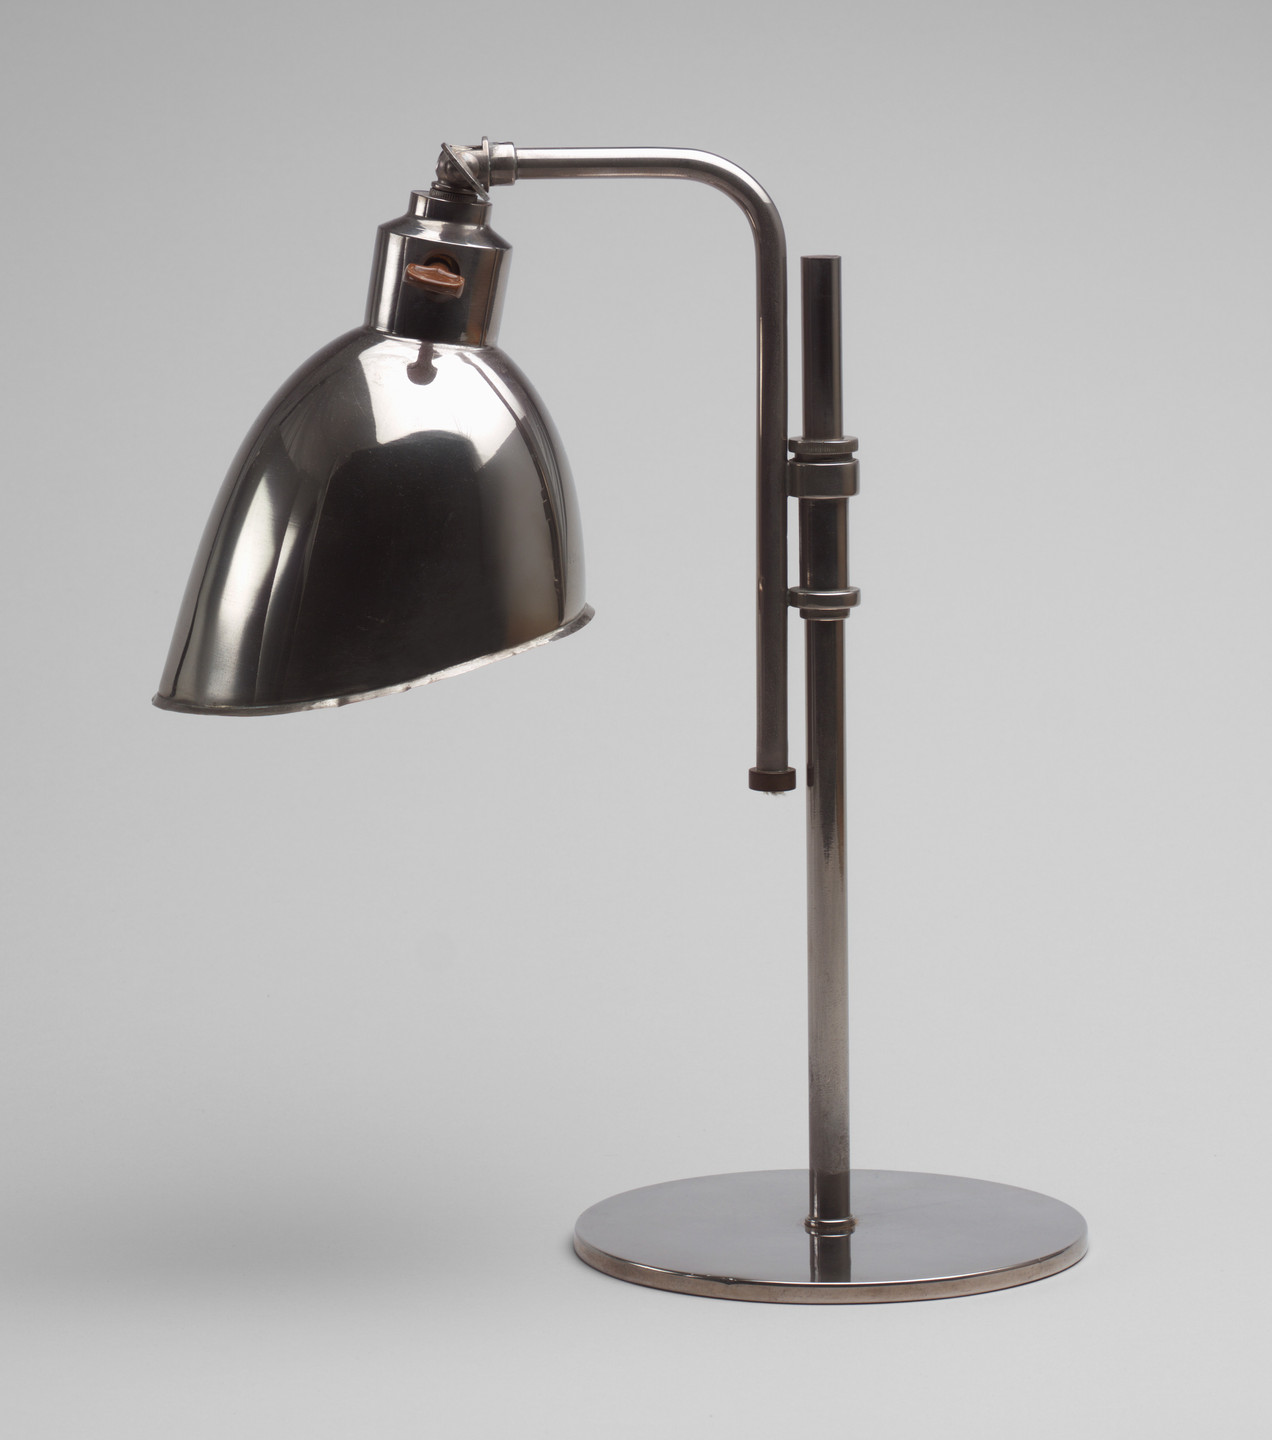 Christian Dell. Table Lamp. 1926